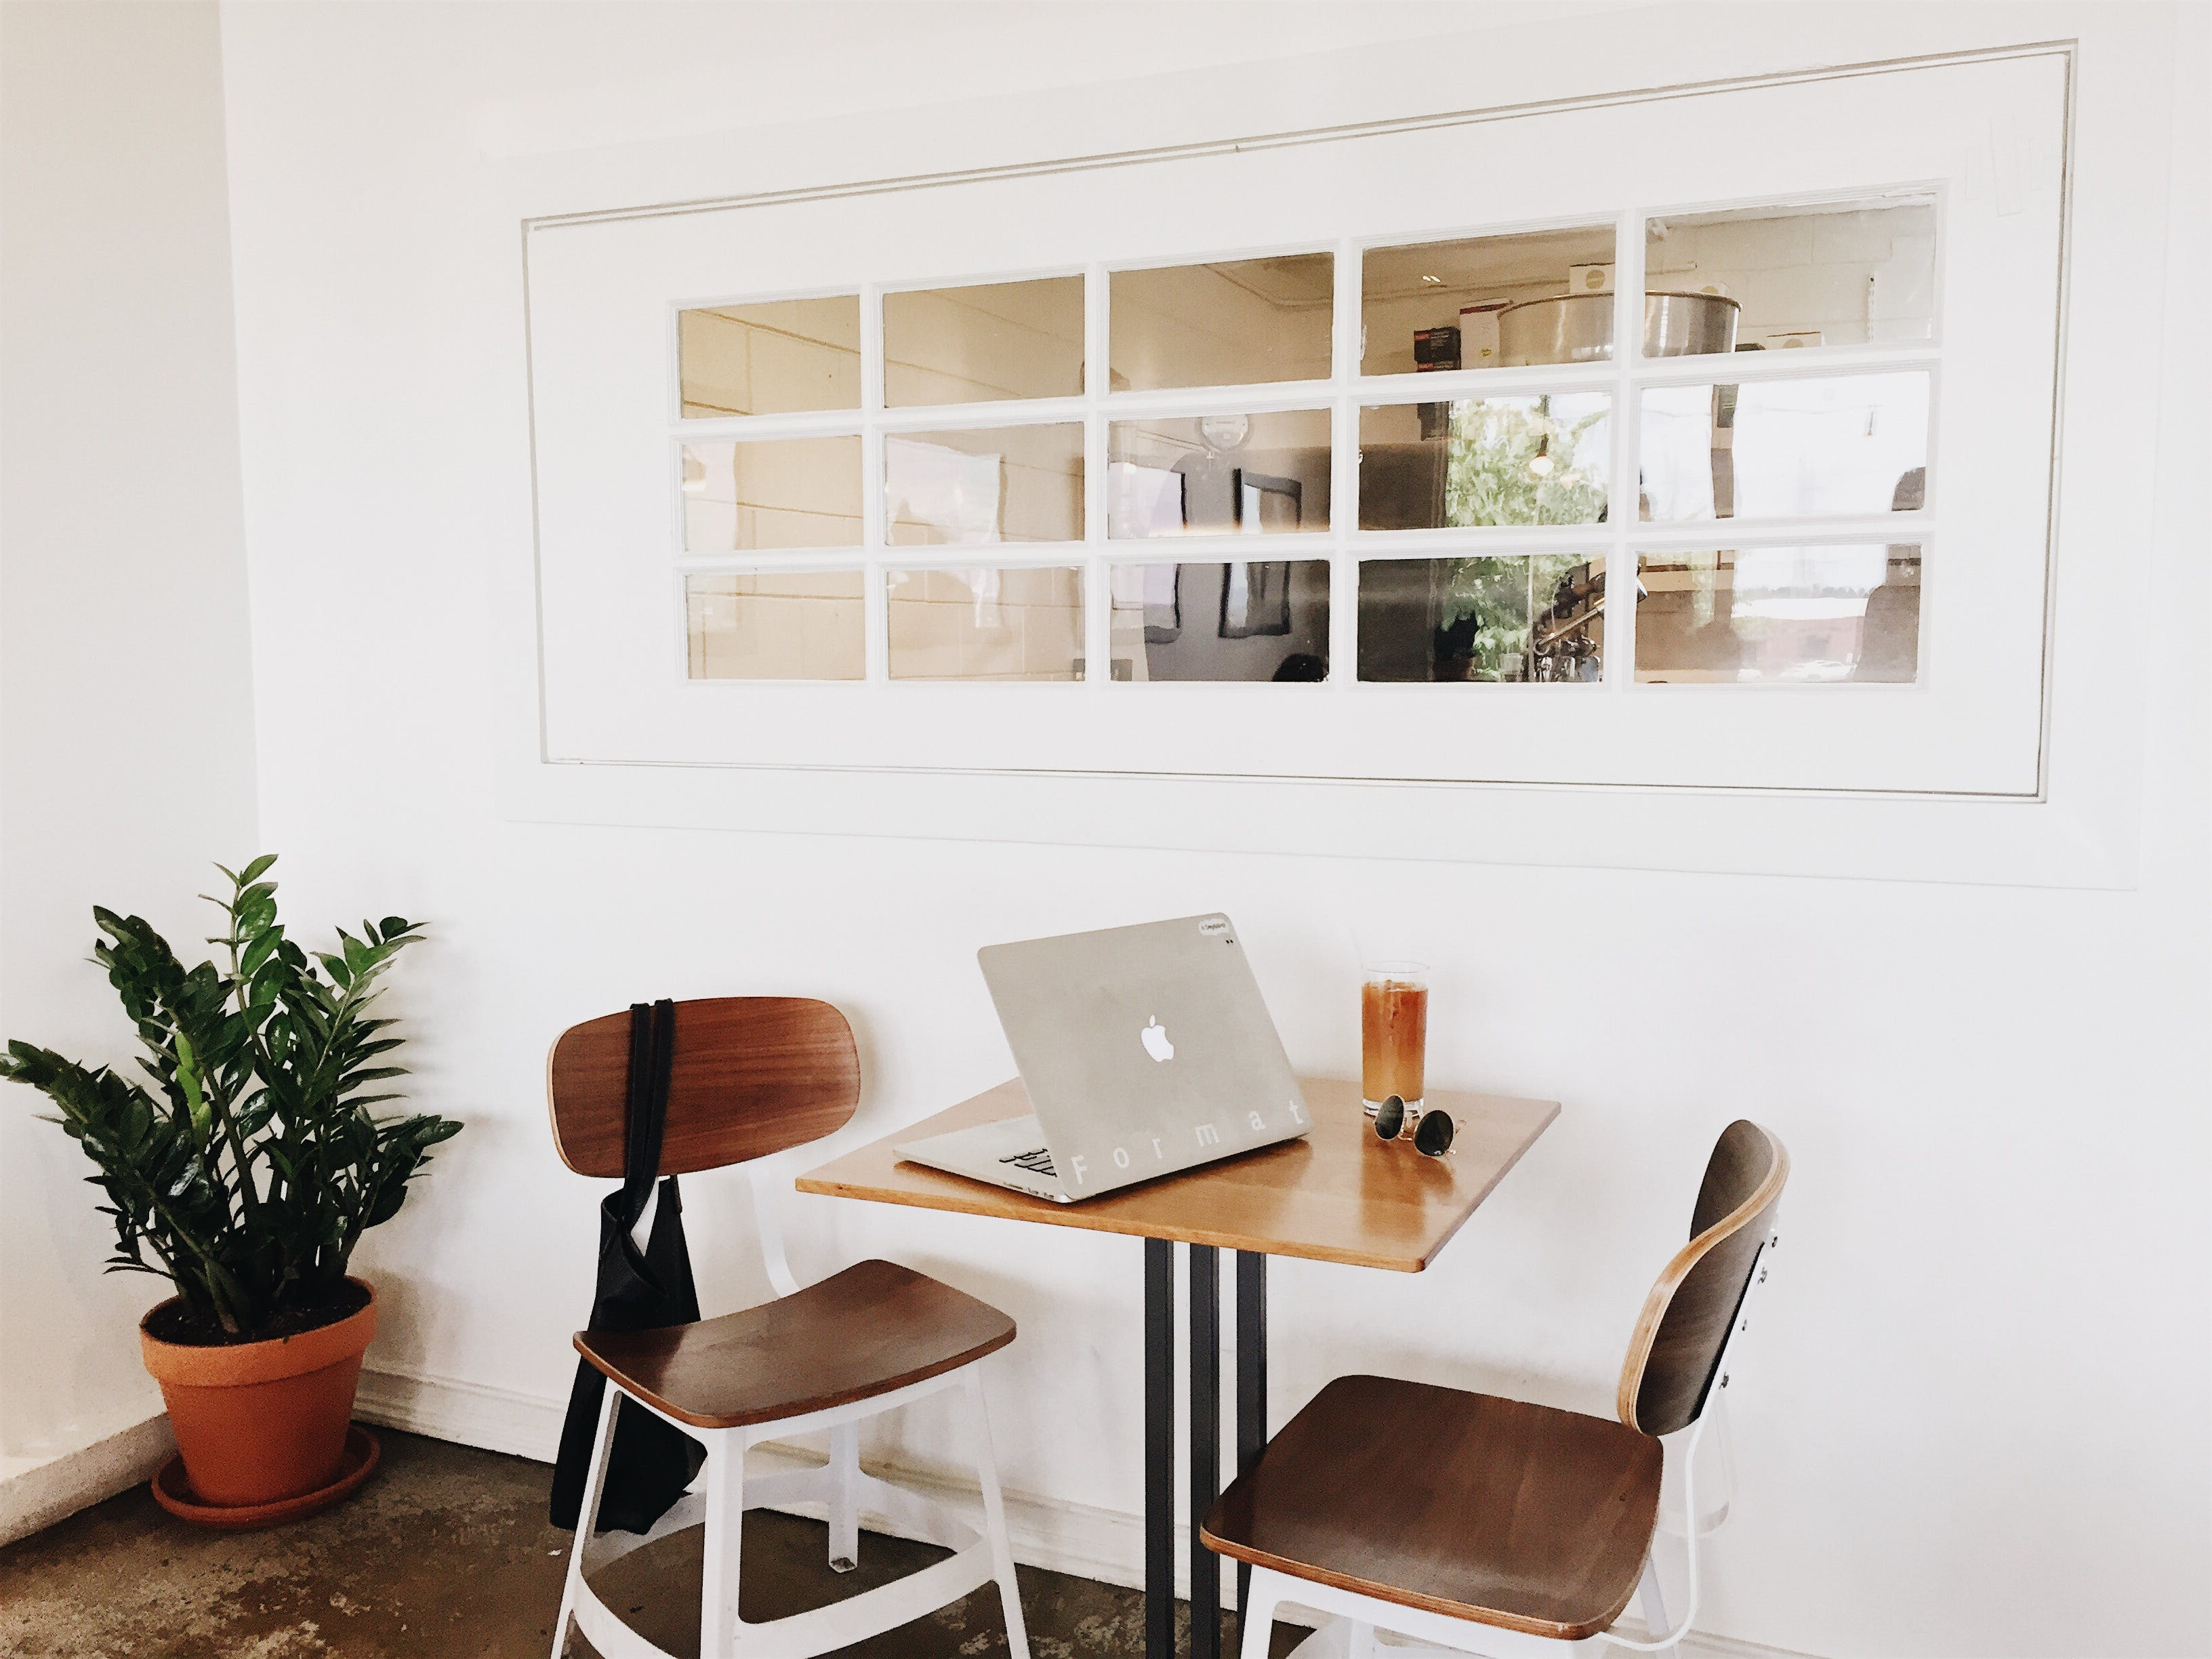 Macbook on Brown Wooden Dining Table and Chairs